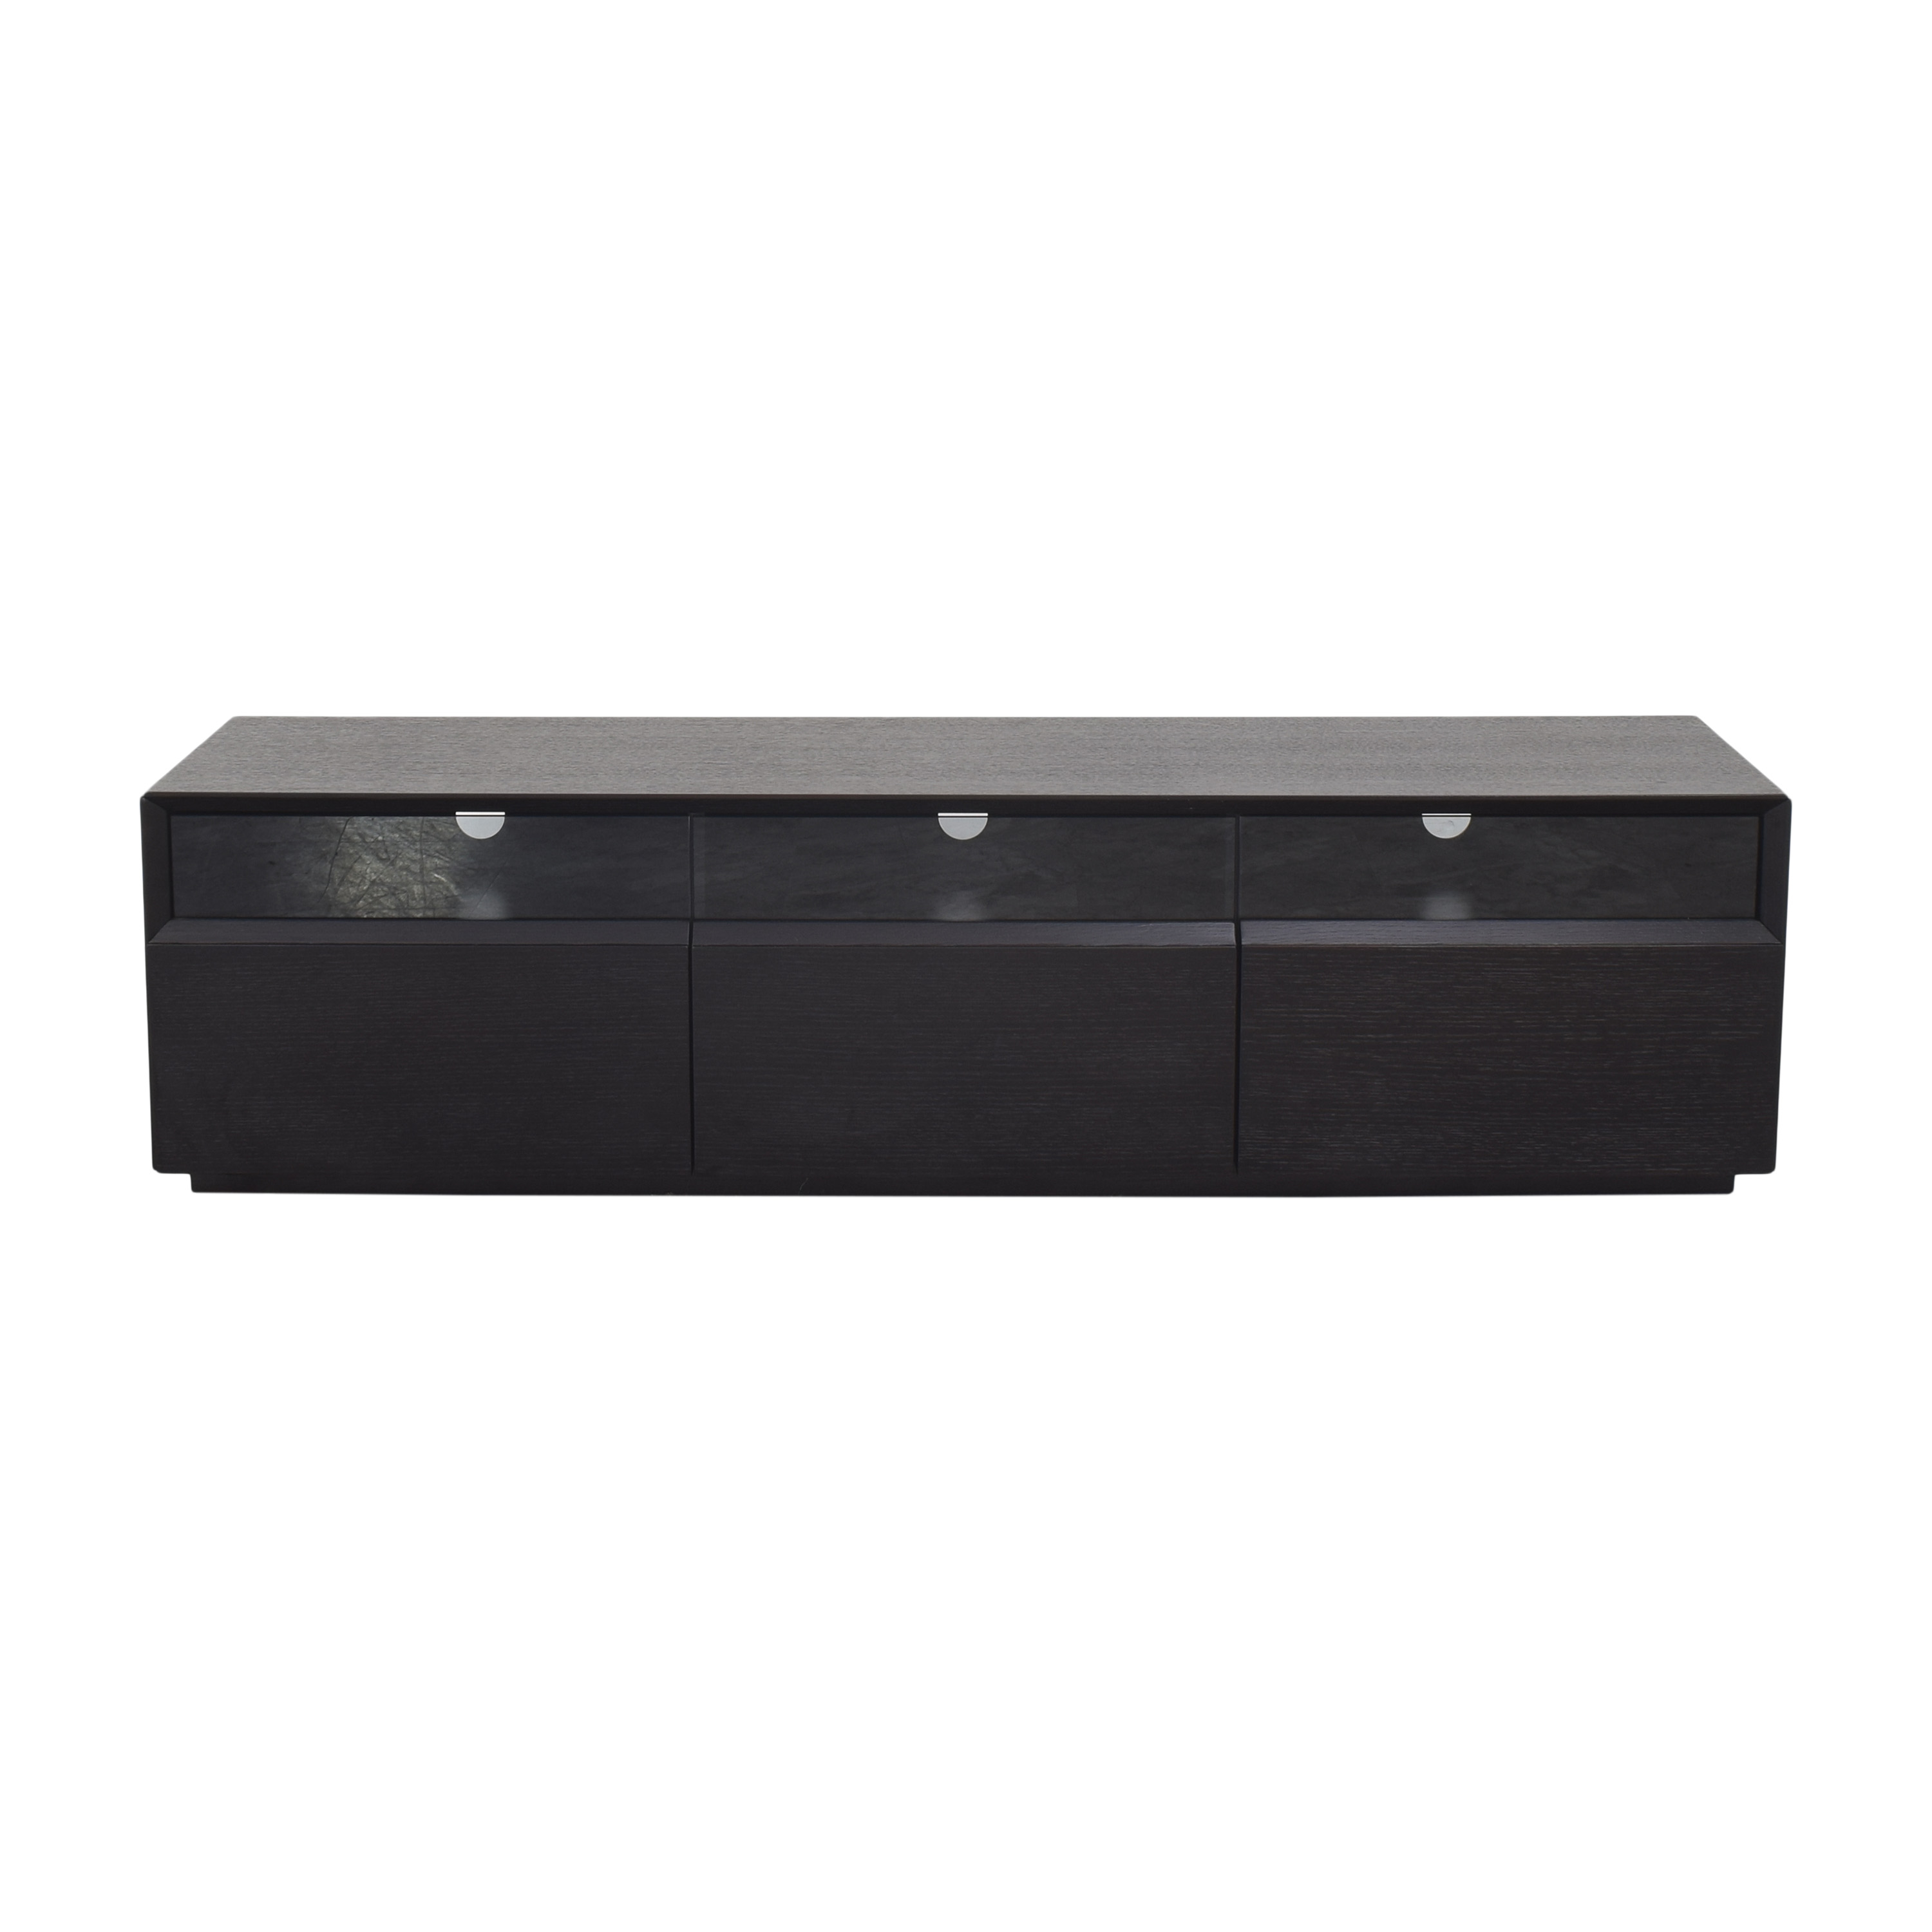 J&M Furniture J&M Contemporary TV Stand nyc